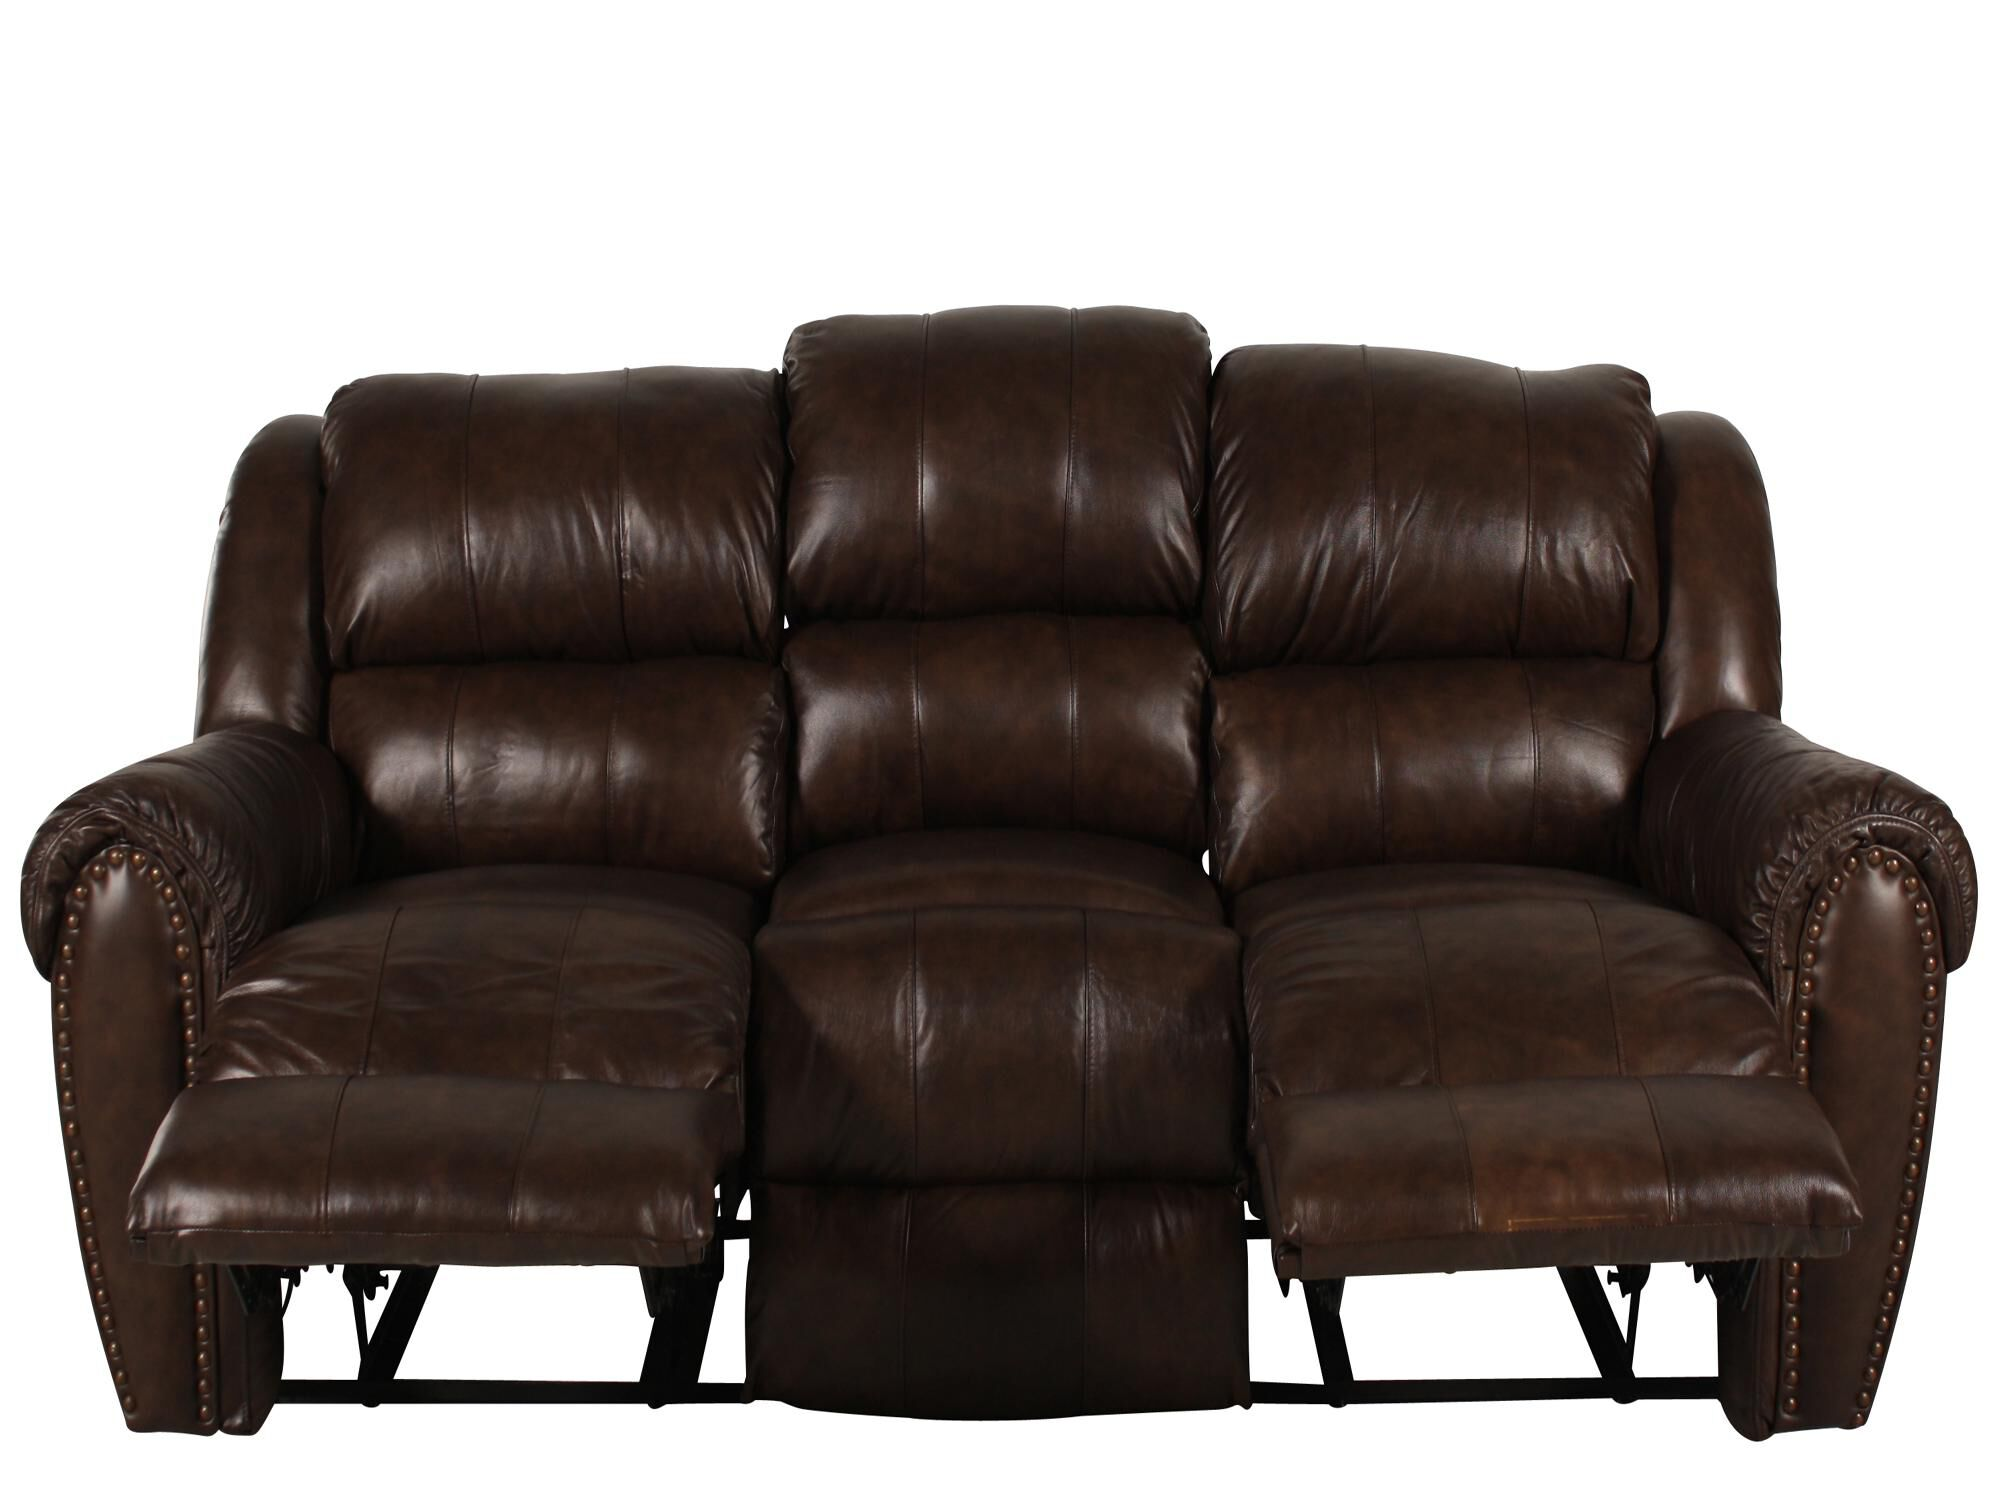 nailhead recliner sofa camas baratos madrid traditional accented 89 quot reclining in brown